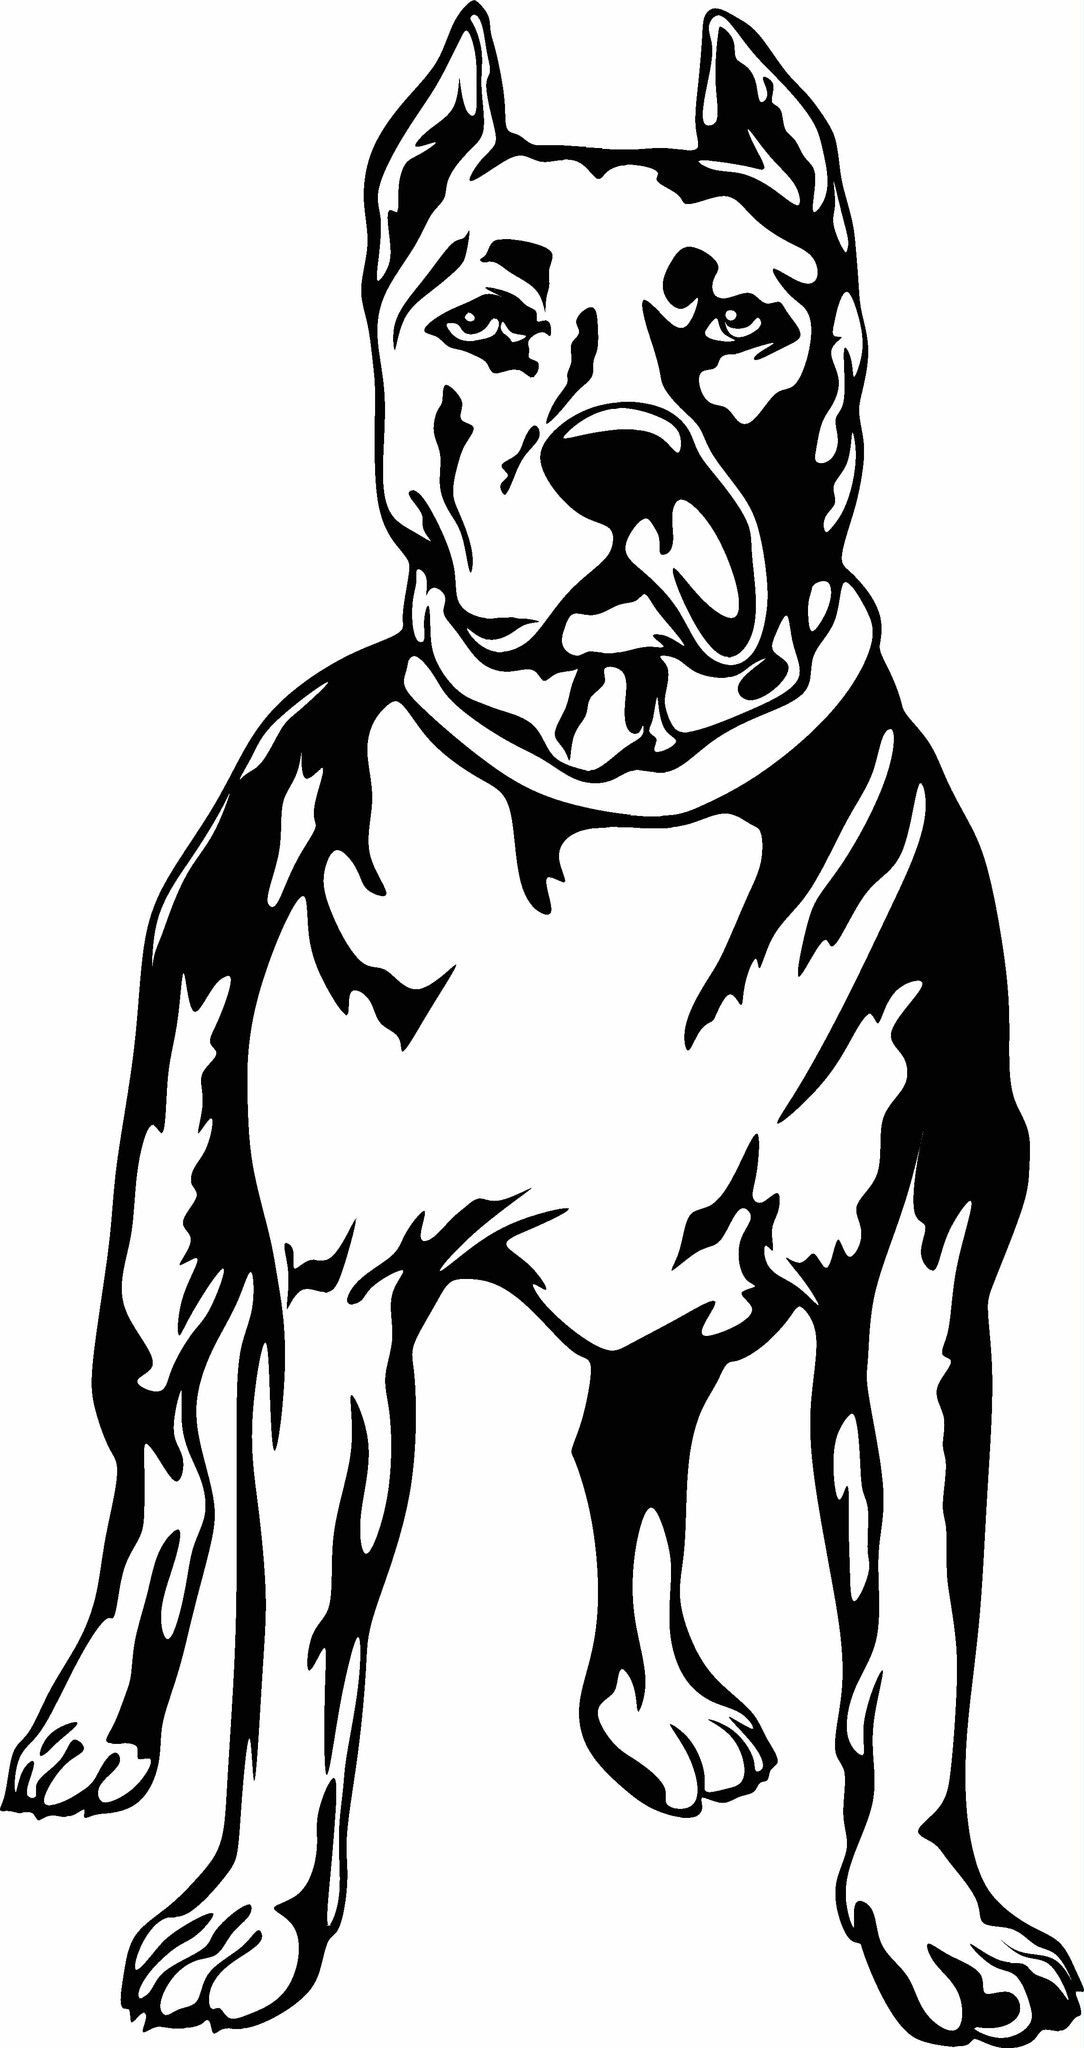 Pit bull standing vinyl cut out decal sticker choose - Dessin de pitbull ...